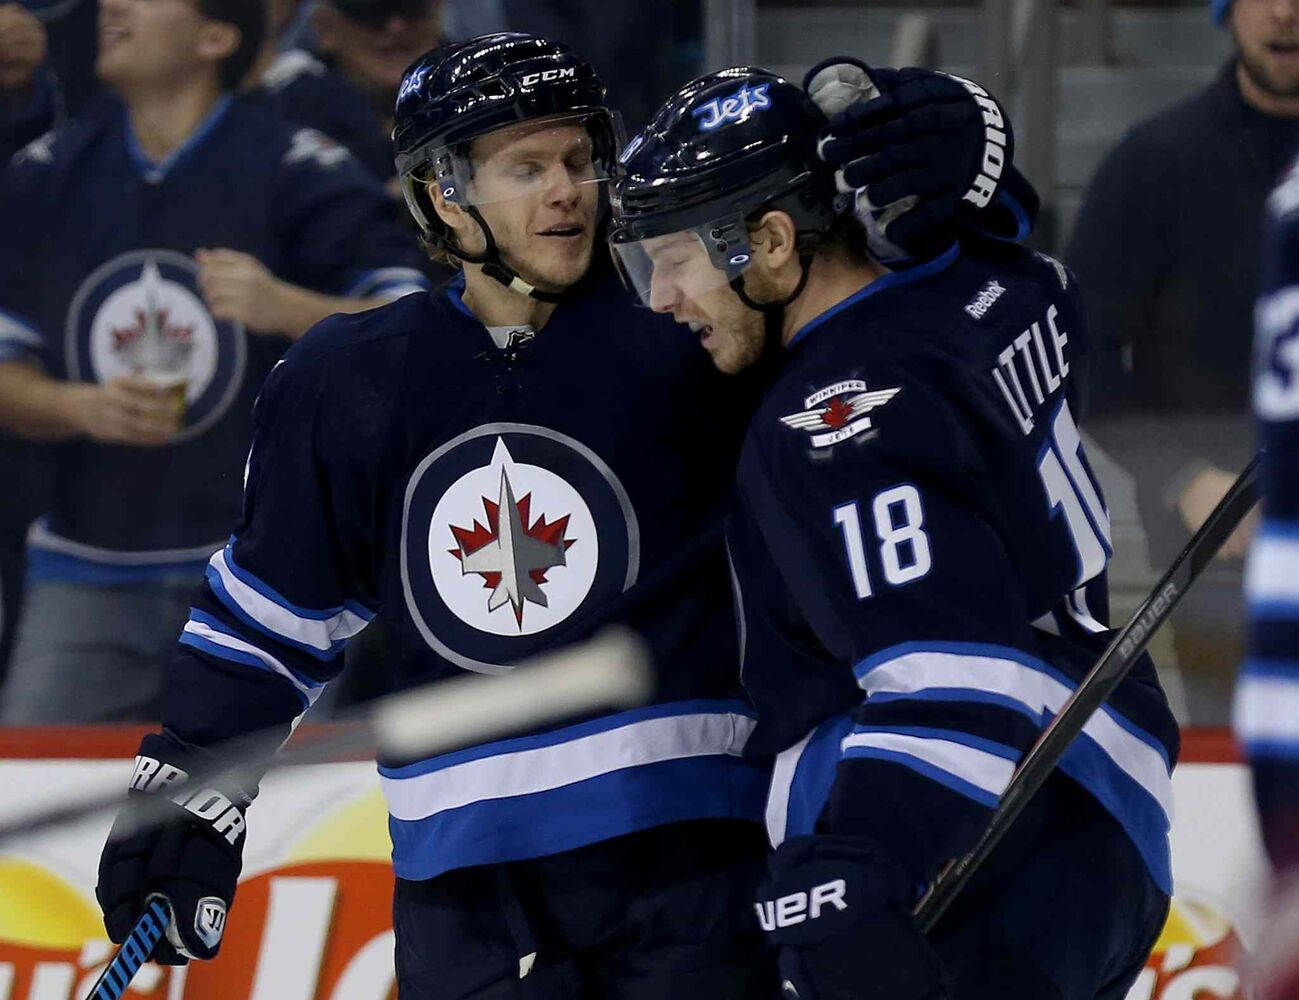 Winnipeg Jets' Tobias Enstrom (39) and Bryan Little (18) celebrate after Enstrom scored in the second period Saturday at MTS Centre. (Trevor Hagan / Winnipeg Free Press)